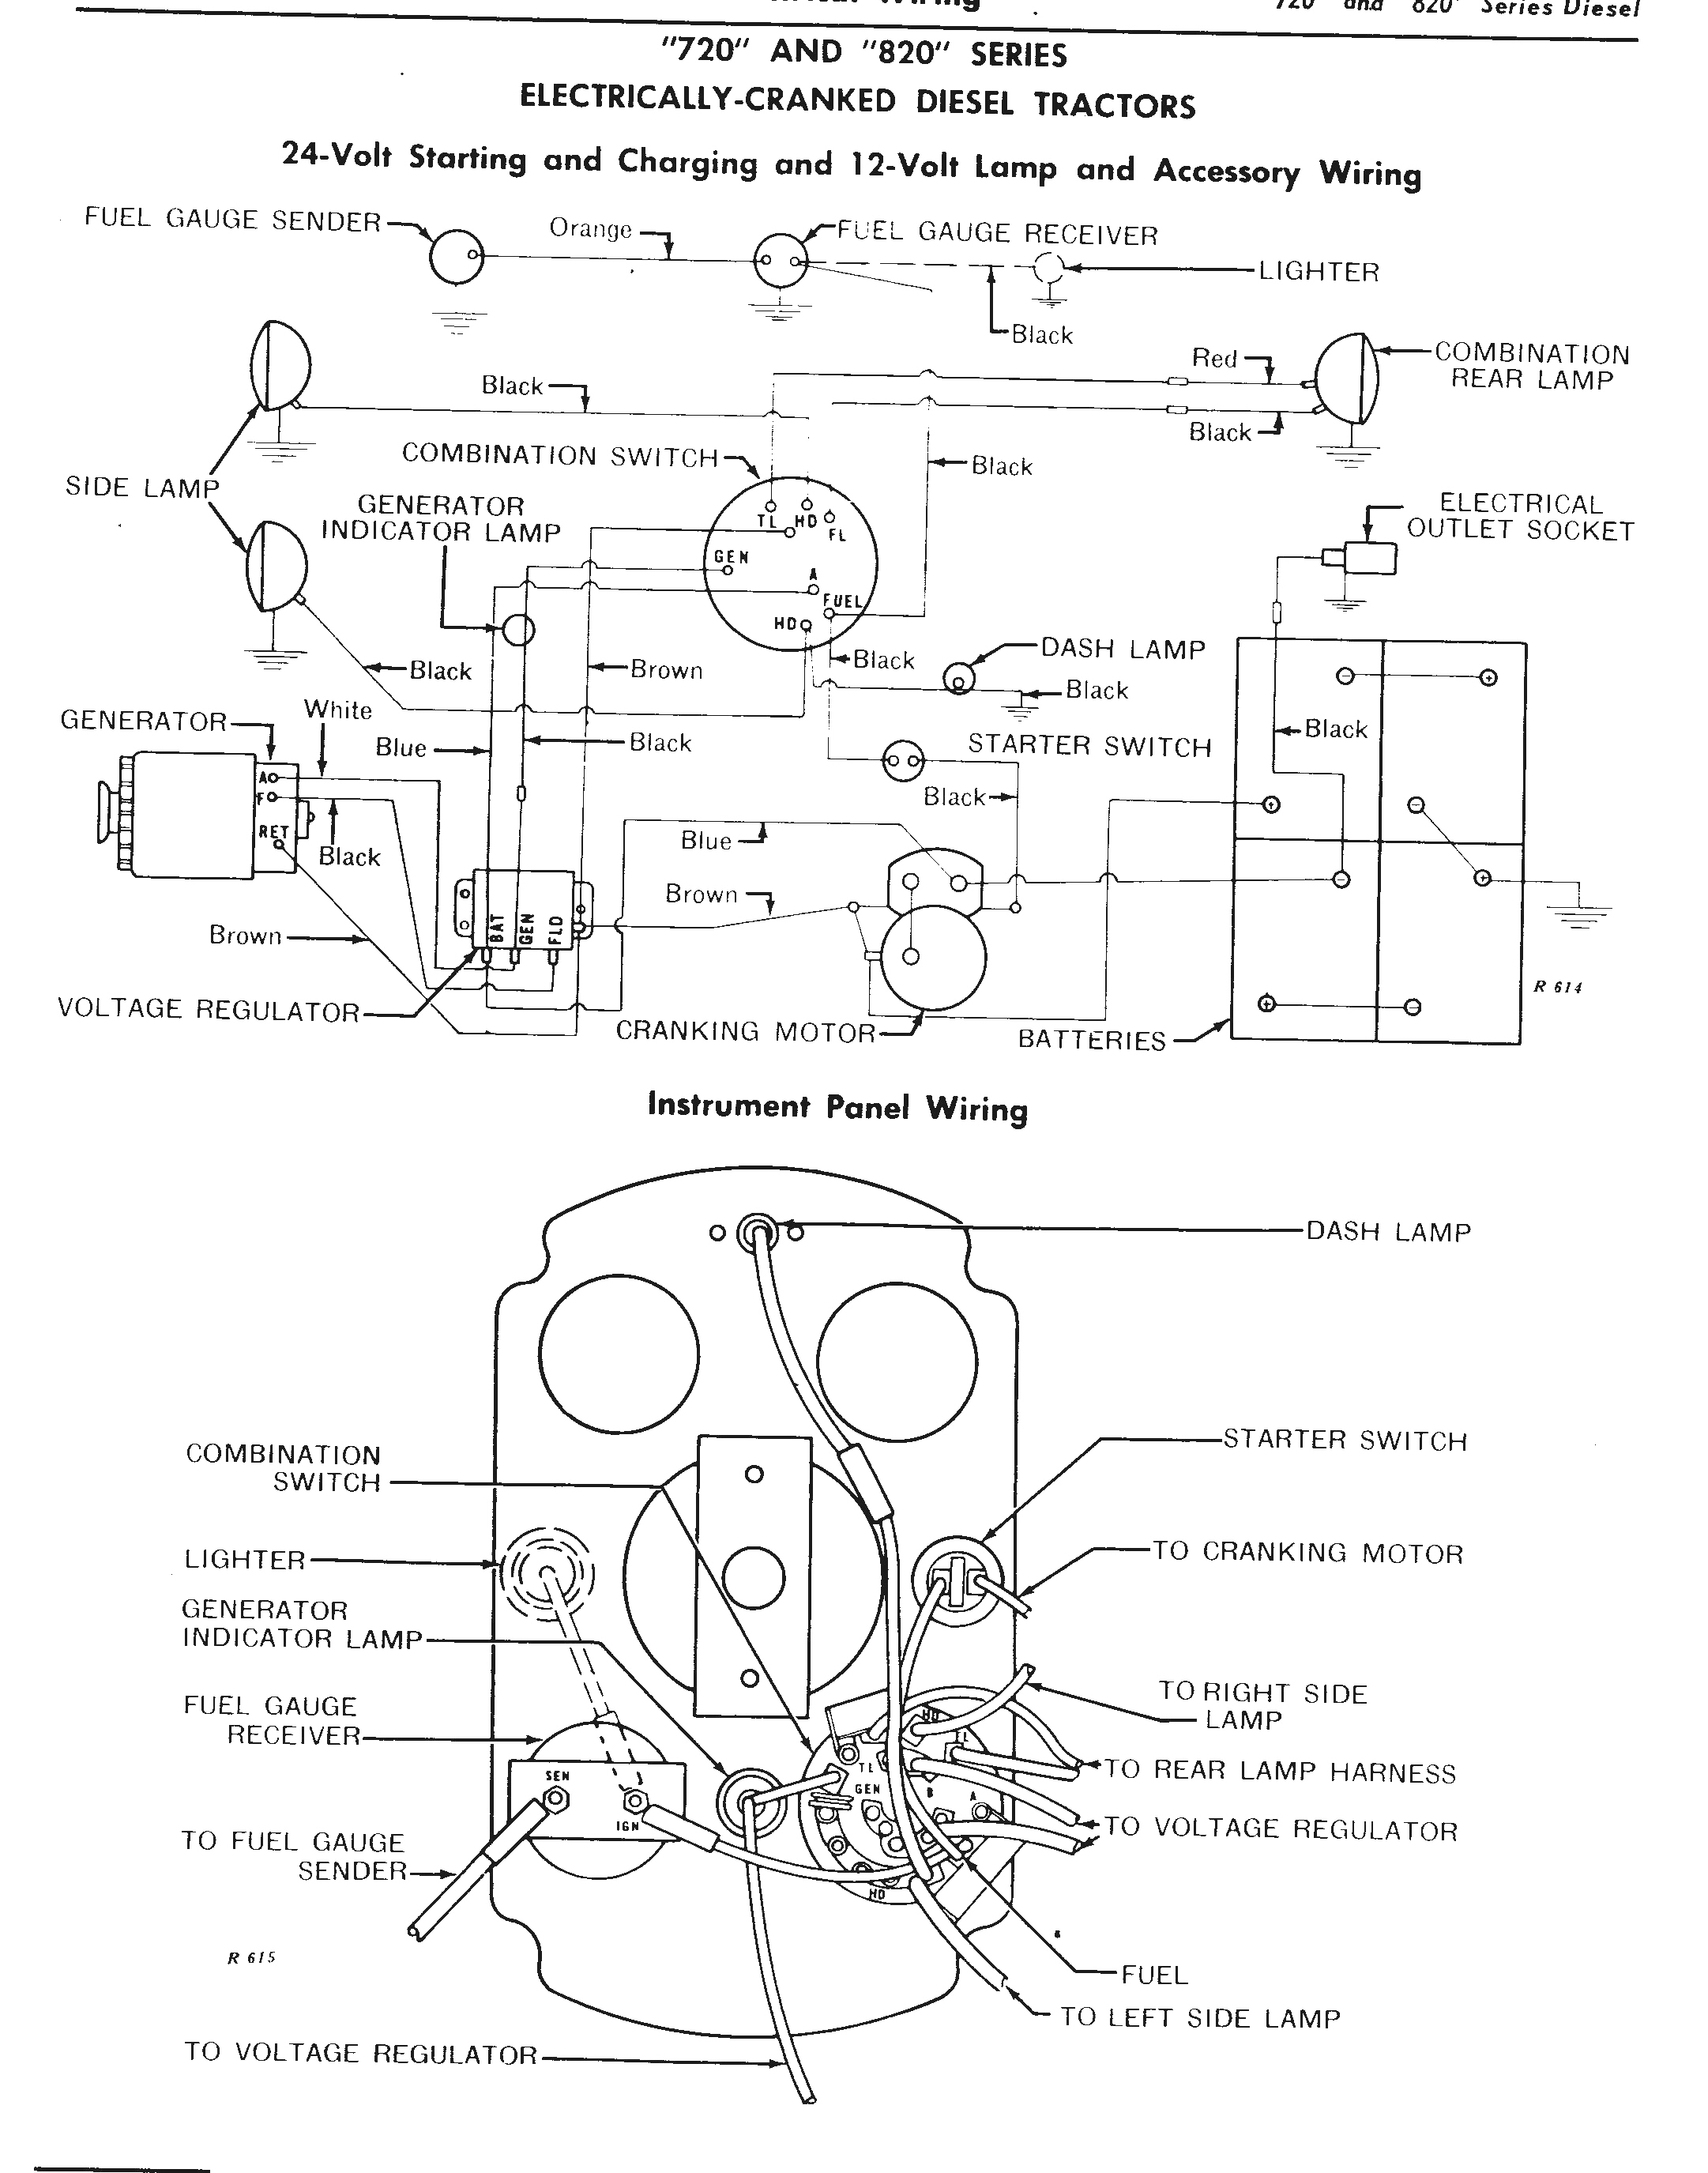 John Deere 5010 Wiring Schematic Manual Guide Diagram 265 The 24 Volt Electrical System Explained Rh Petcaretips Net